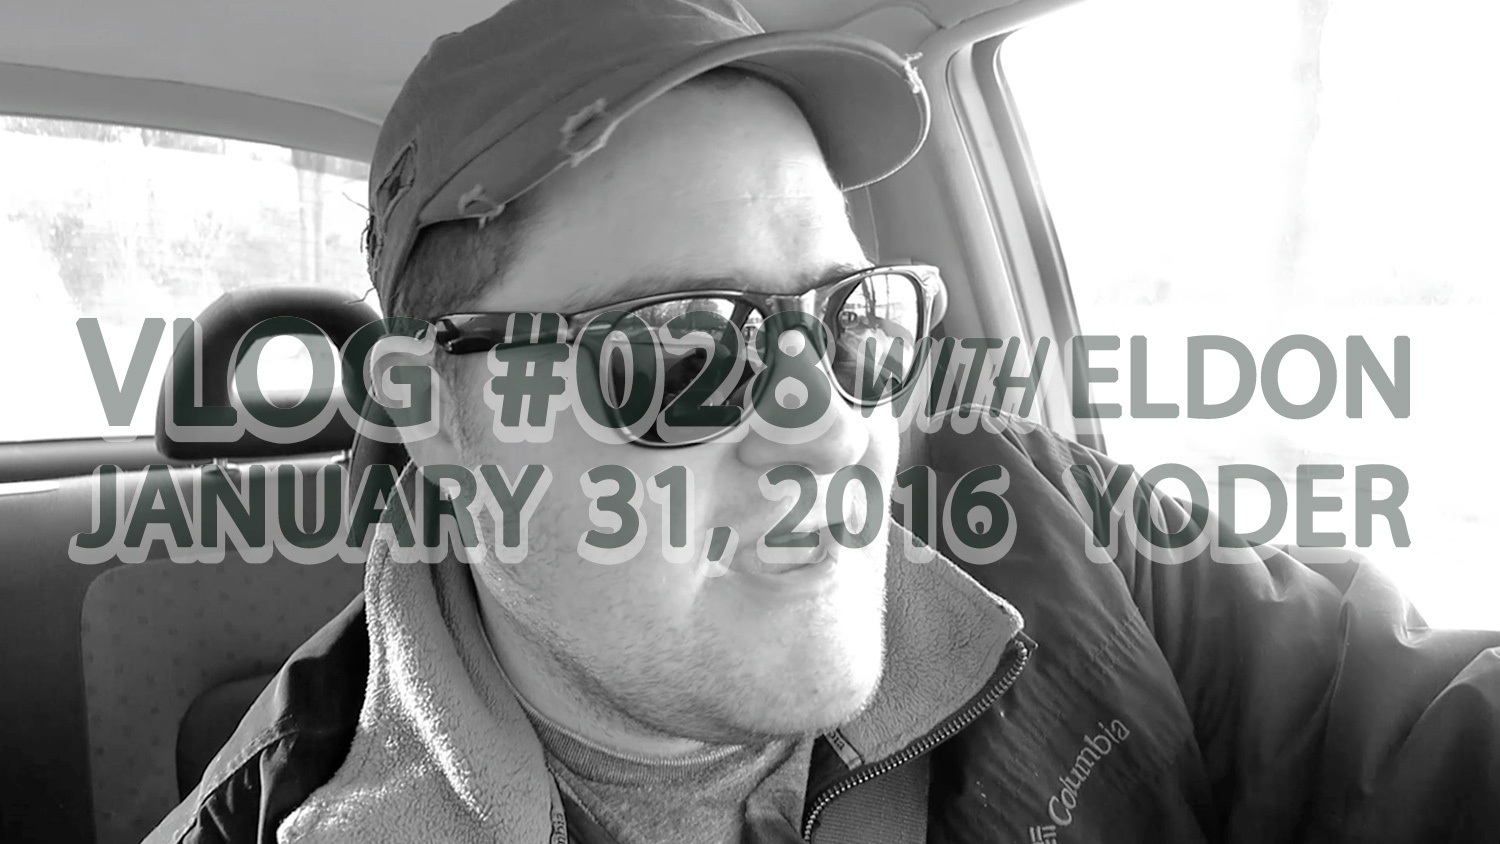 POSSIBLY THE BEST ONE YET - VLOG #028